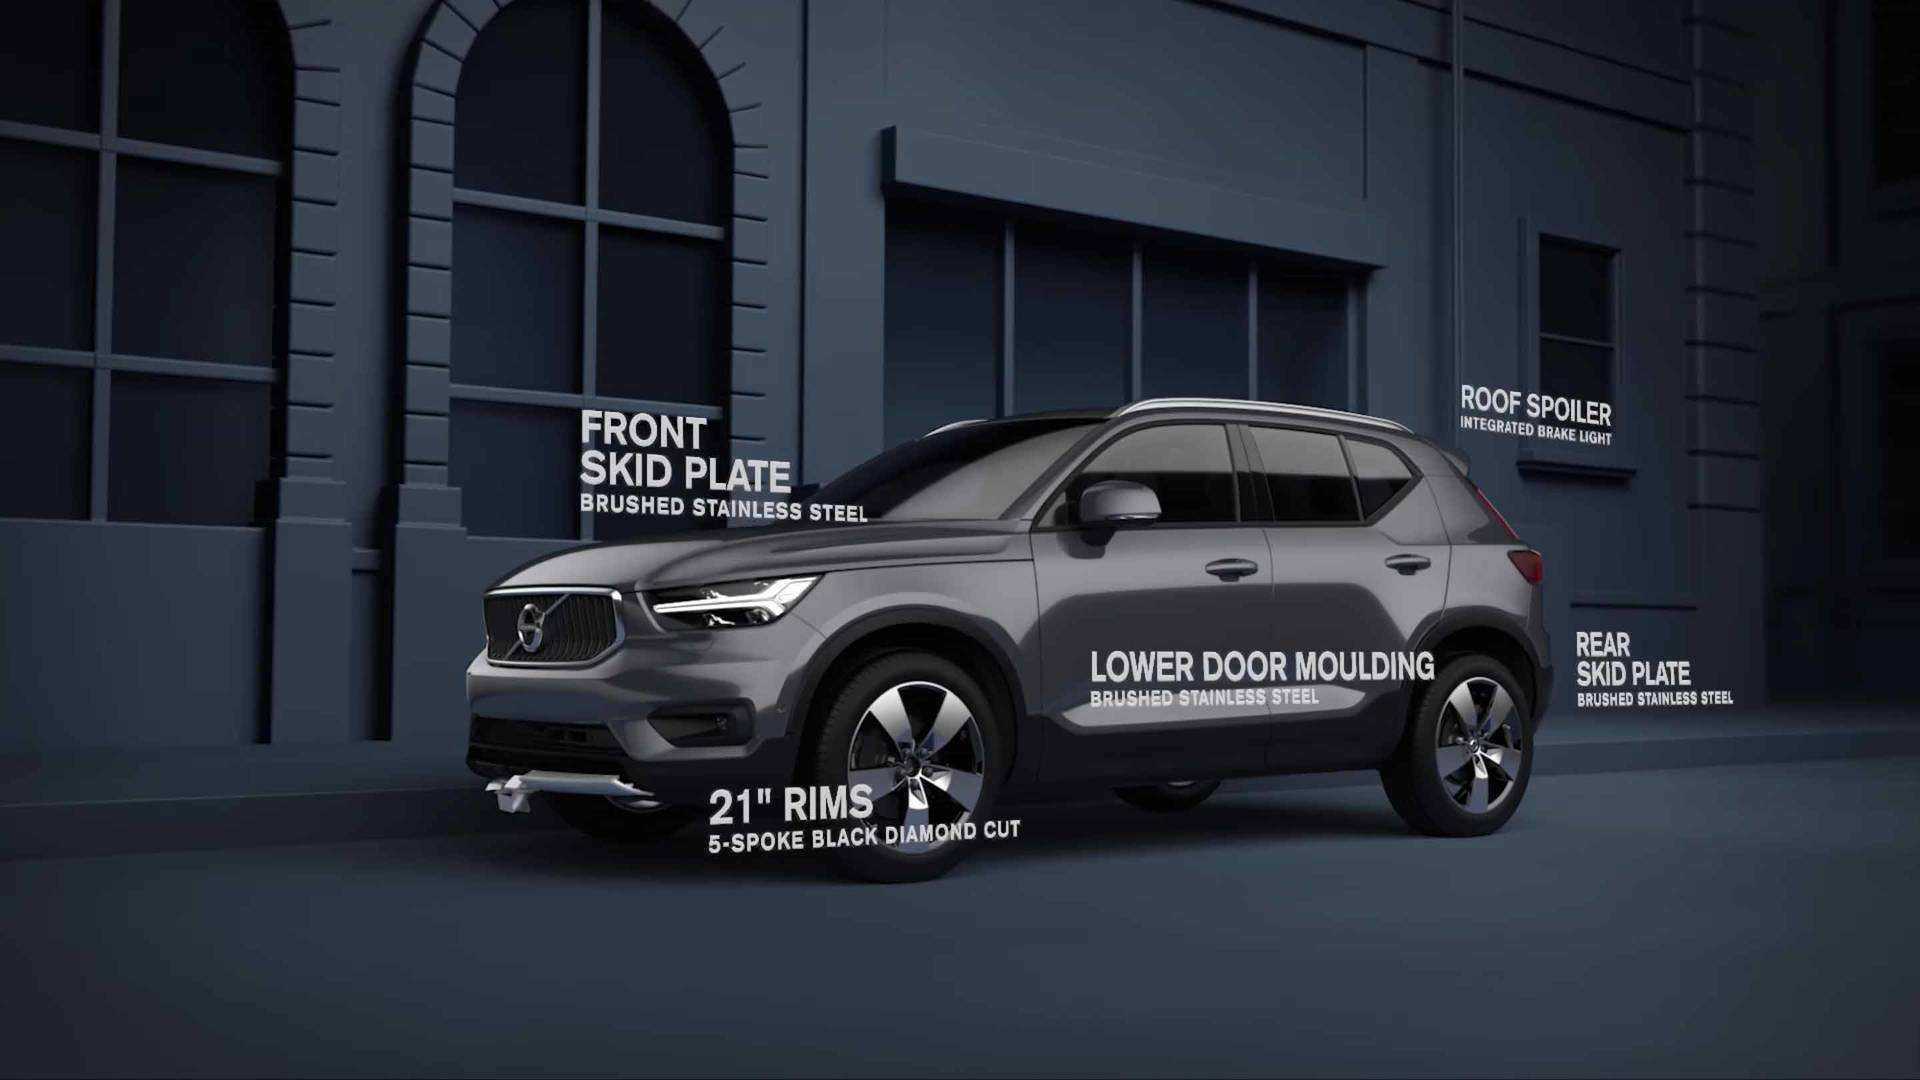 68 The New 2019 Volvo Xc60 Exterior Styling Kit Price And Release Date Rumors for New 2019 Volvo Xc60 Exterior Styling Kit Price And Release Date